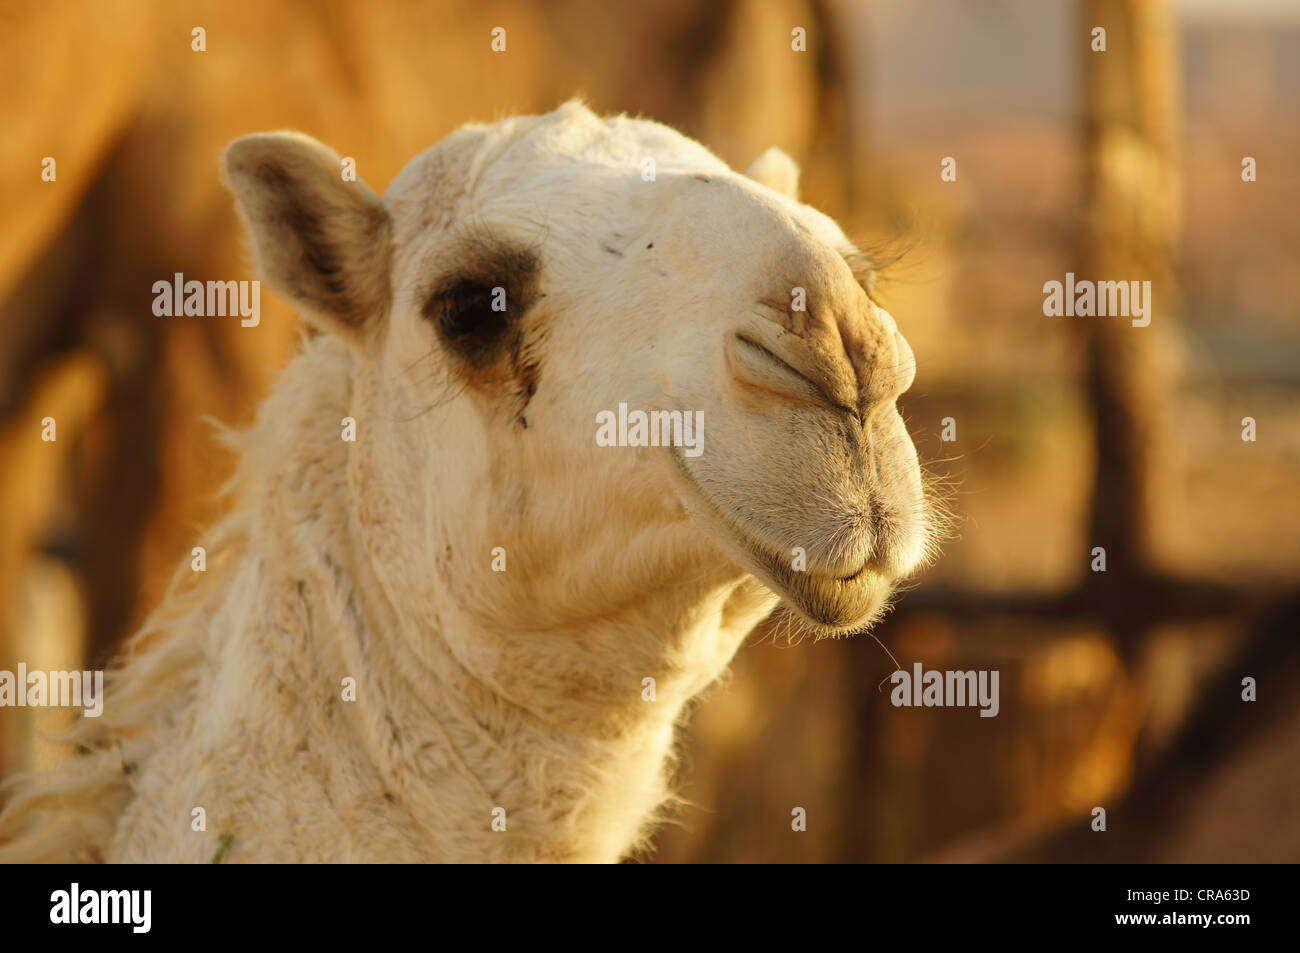 Close up of a camel's head at the Red Sands, Riyadh, Kingdom of Saudi Arabia - Stock Image